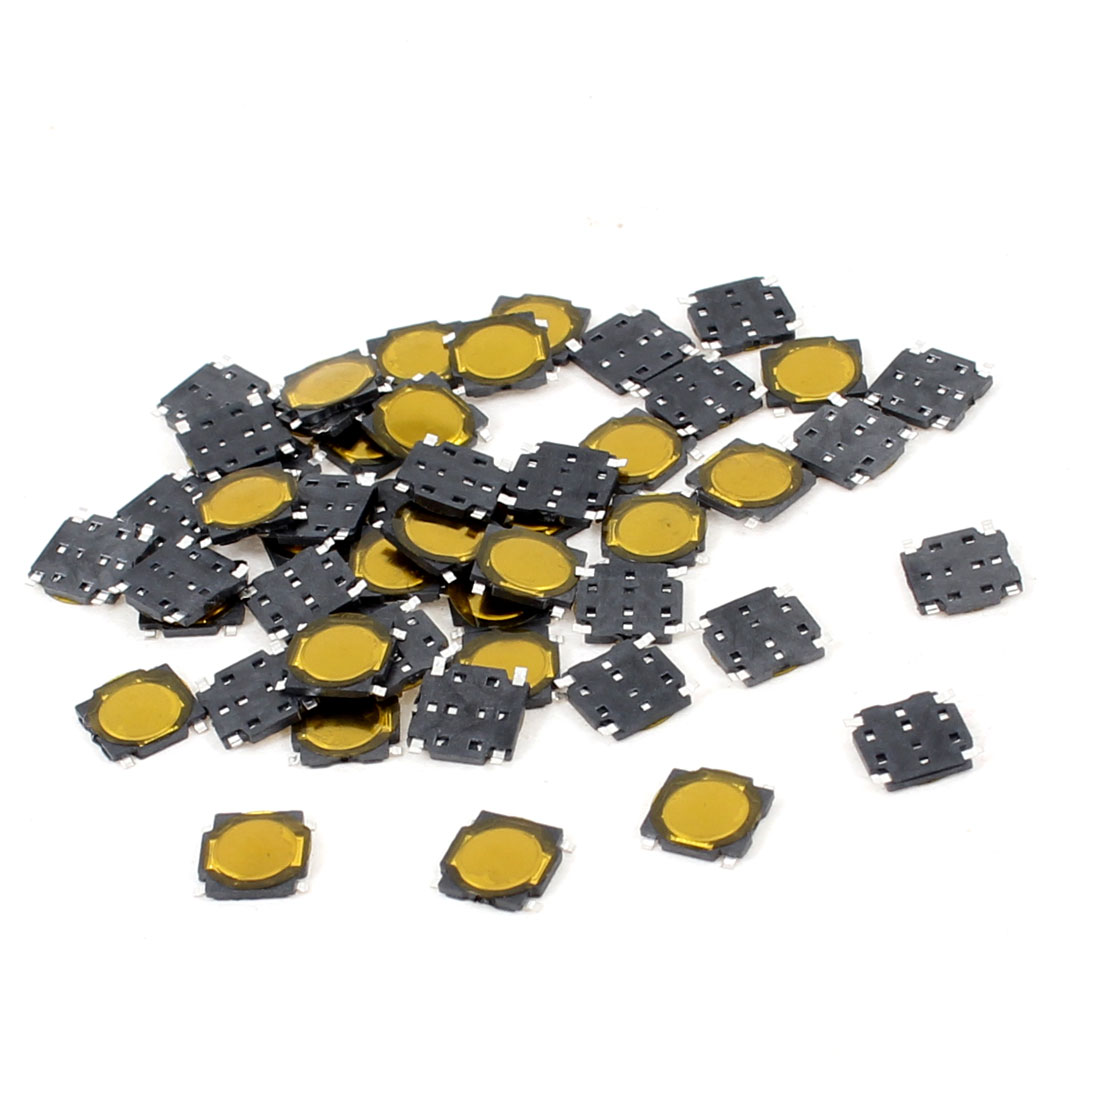 50 Pcs 4.5x4.5x0.5mm 4 Pins Momentary Push Button SMD SMT Tactile Tact Switch